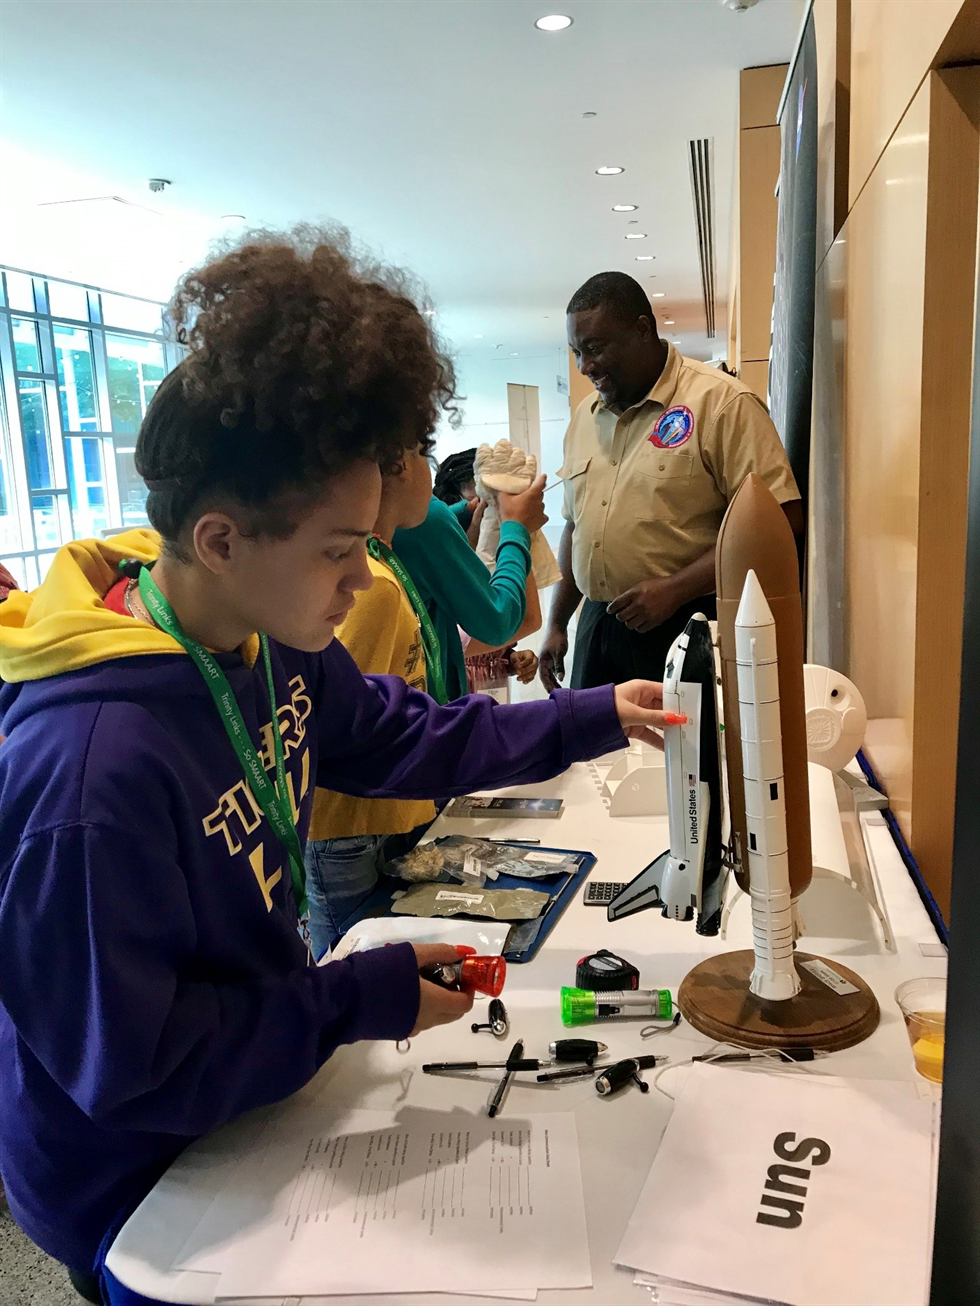 A combination of NASA exhibits and artifacts, along with an engaging hands-on learning activity, entranced the young learners who took part in the So SMAART program in late September. Image courtesy of Dr. Robert Howard.